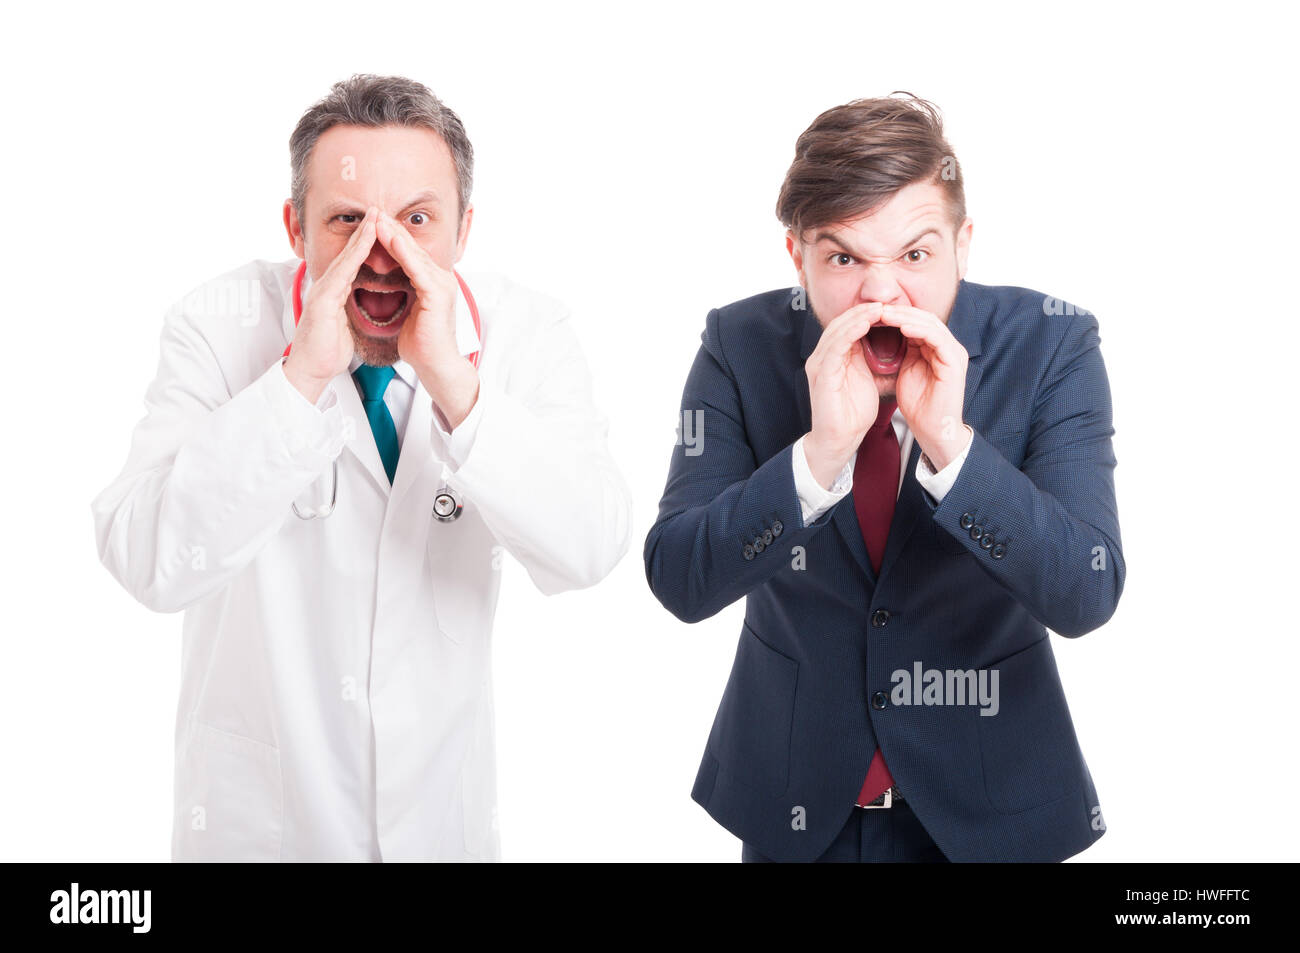 Angry medic or doctor and business man yelling or screaming out loud isolated on white - Stock Image